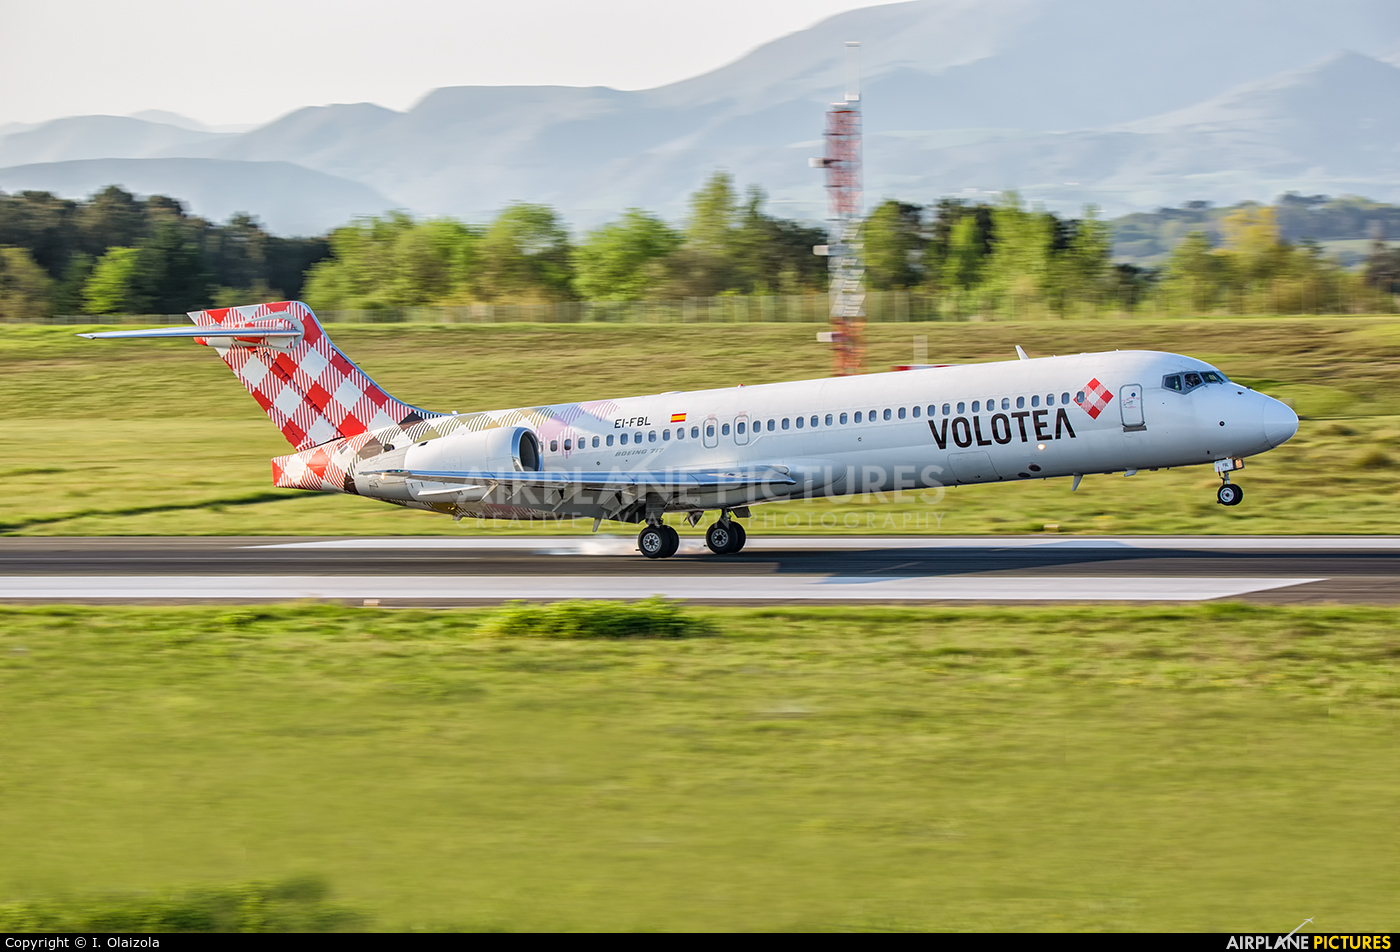 Volotea Airlines EI-FBL aircraft at Biarritz